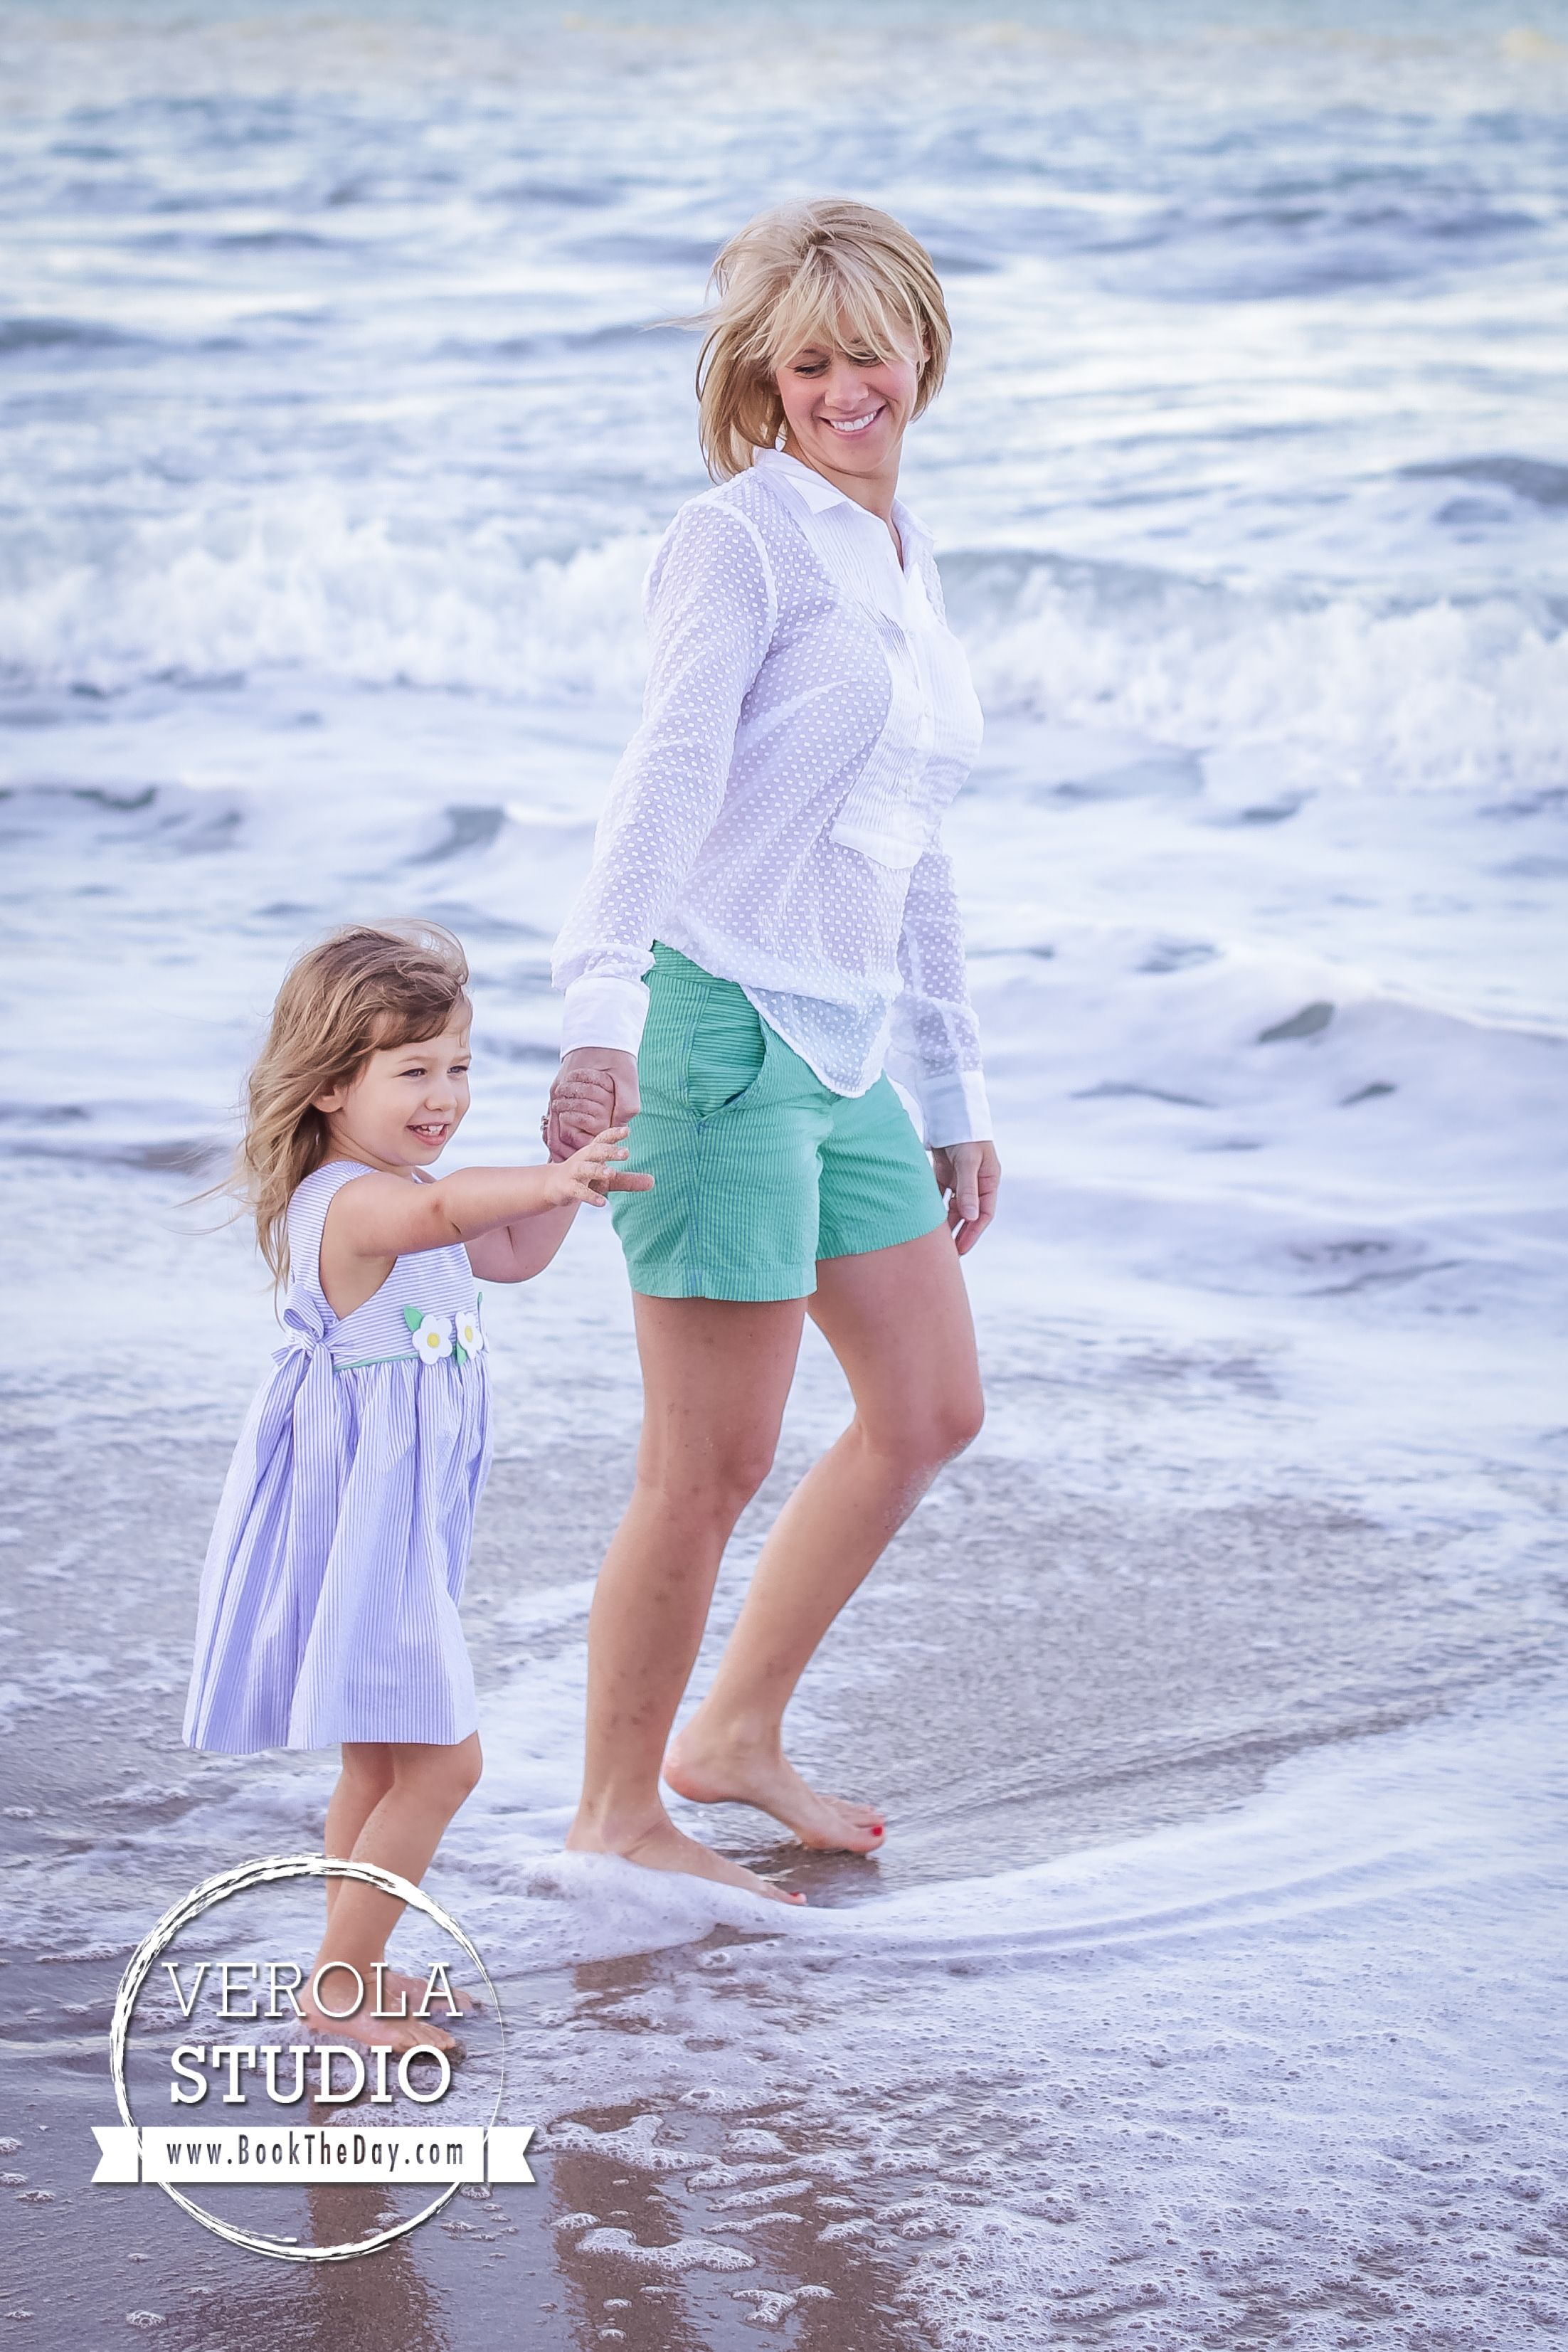 Such a cute photo of a happy mom and her daughter!  #family #photography #beach #familyphoto #verolastudio